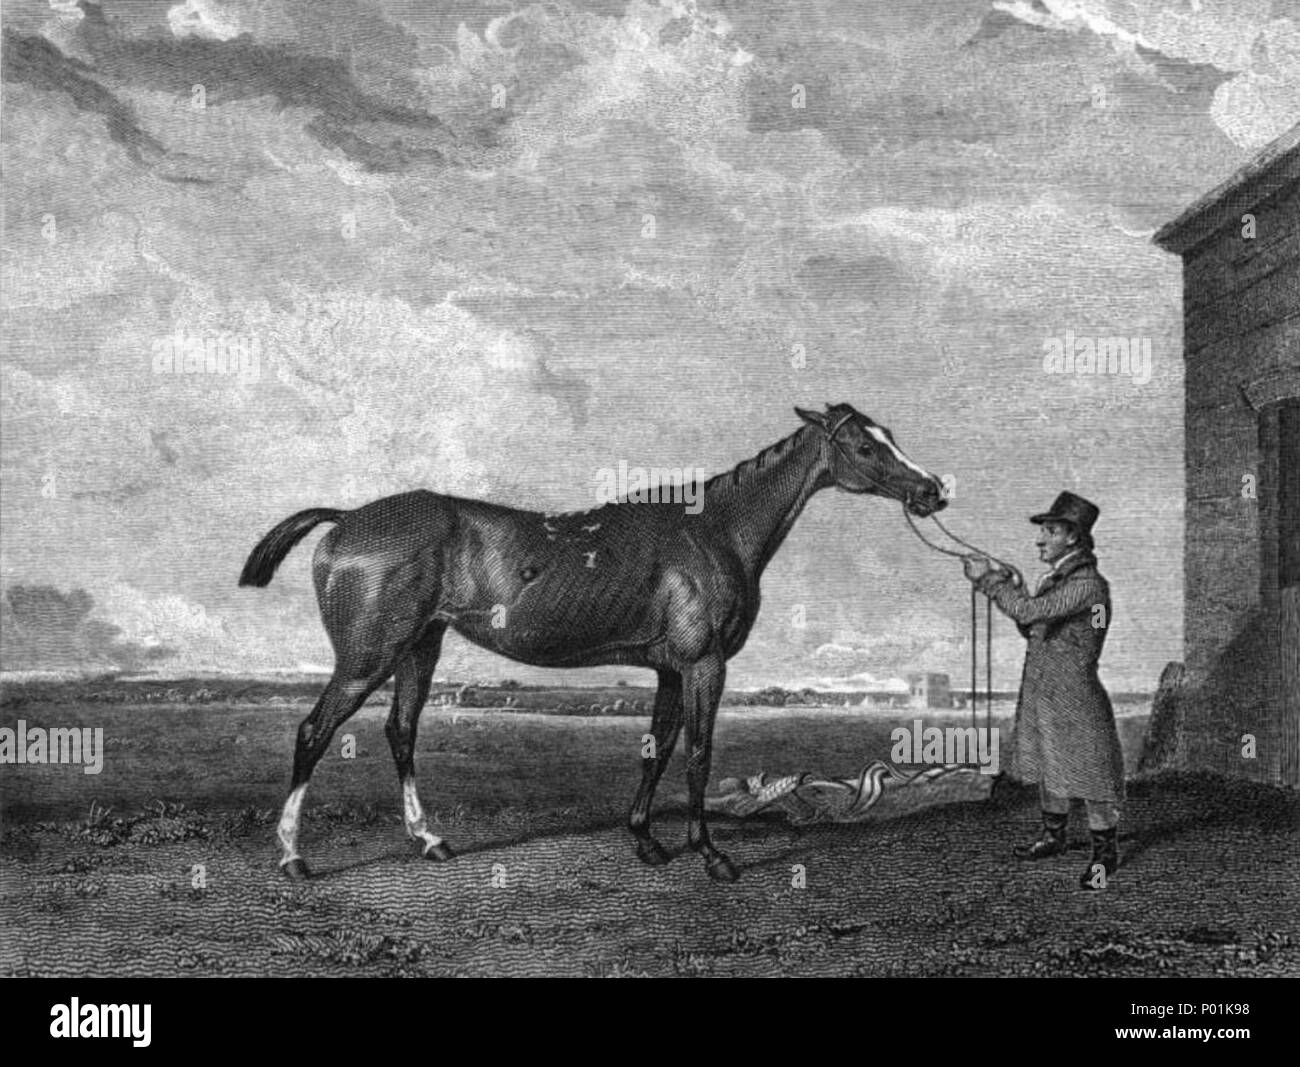 . English: Rhoda, Thoroughbred racehorse and winner of 1816 1000 Guineas.  . 1821. Engraved by W. Smith from a painting by A. Cooper. The death dates of the artists are unknown but are presumed to have occurred before 1912. 20 Rhoda (horse) - Stock Image